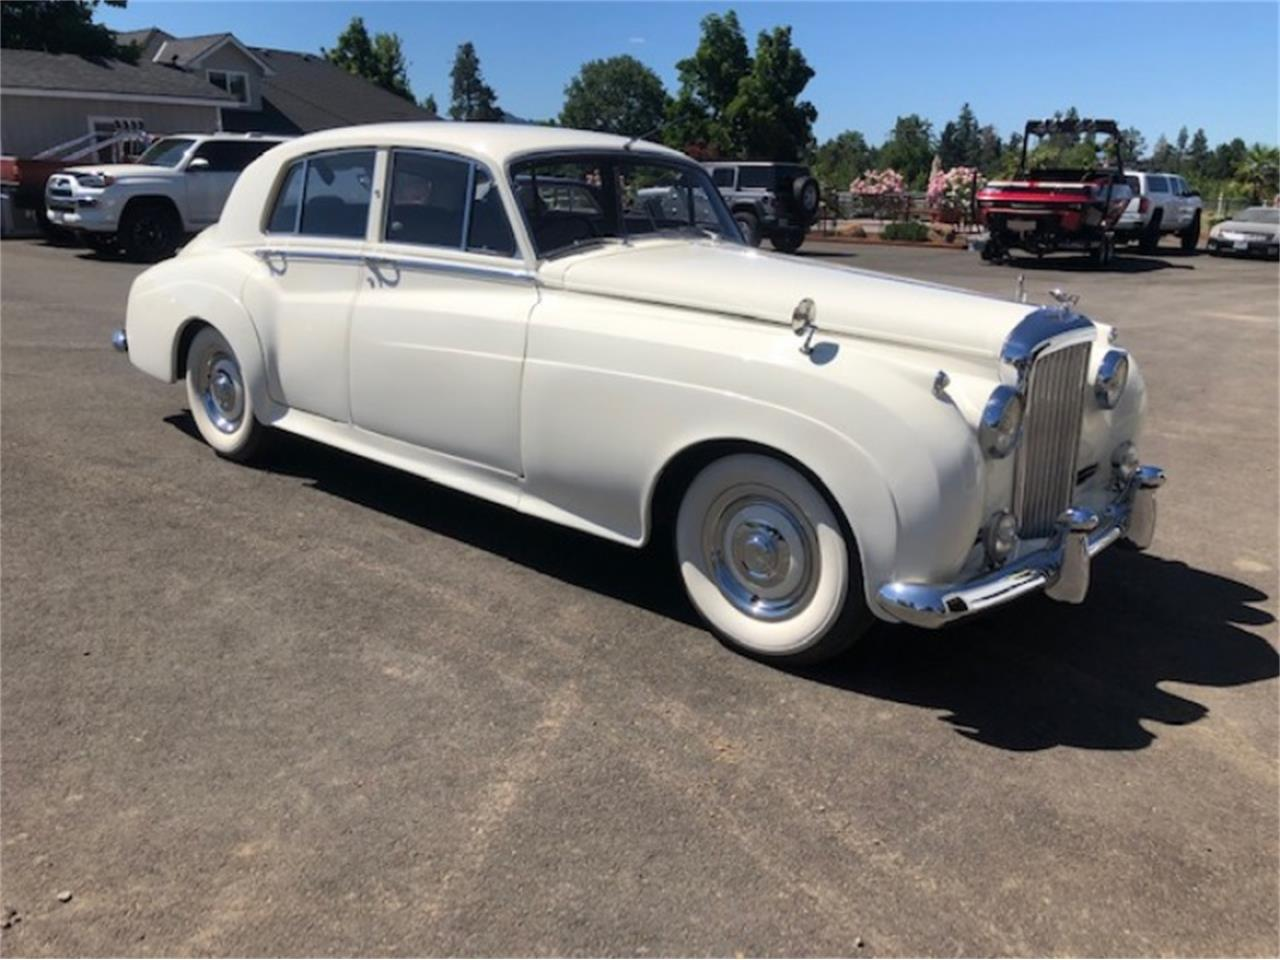 Large Picture of '58 Bentley Saloon located in Sparks Nevada Auction Vehicle Offered by Motorsport Auction Group 797664 - QFV9